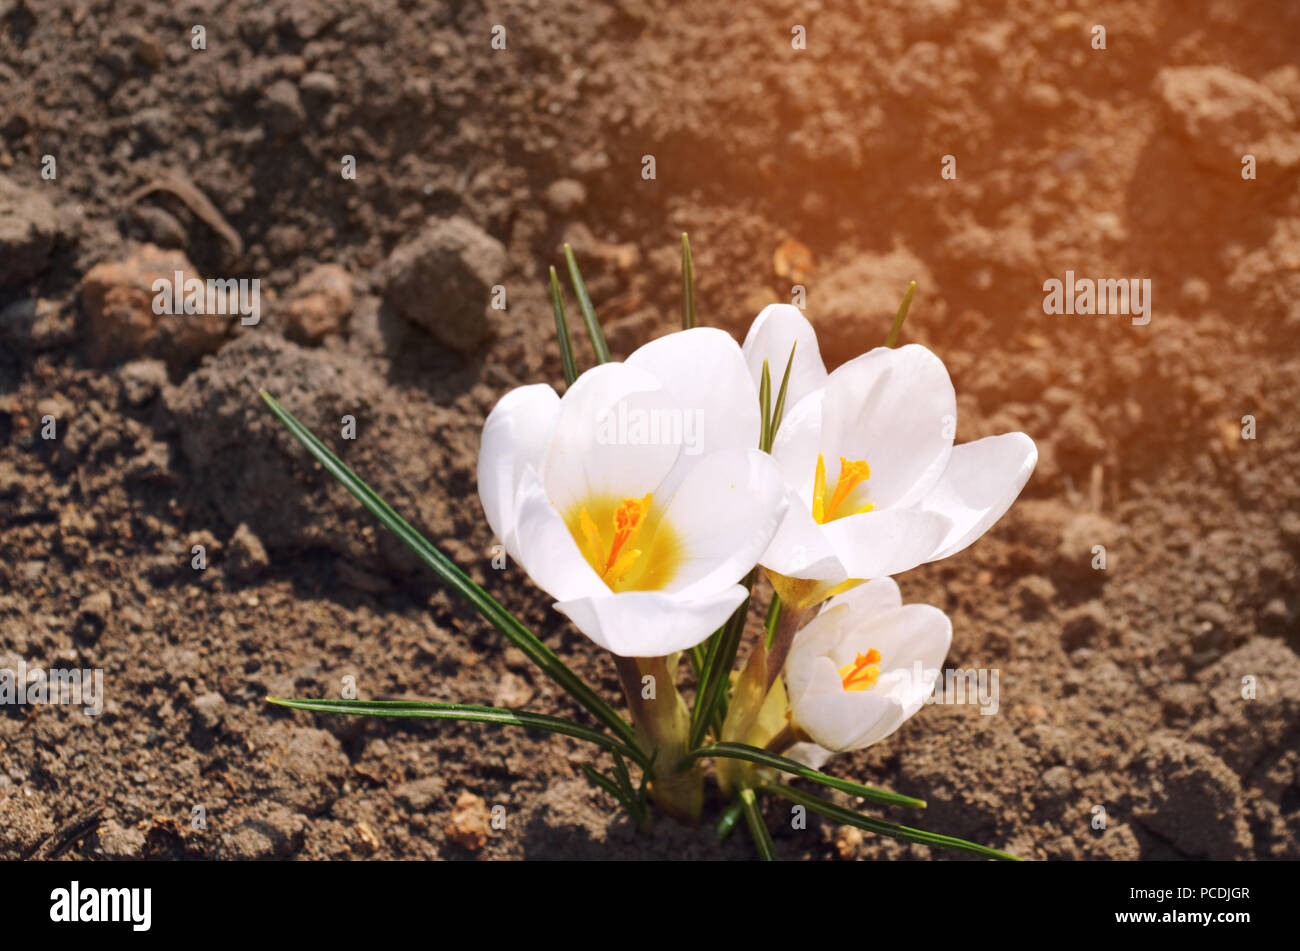 White Crocuses Concept Of Spring Beautiful Flower Natural Wallpaper Close Up Stock Photo Alamy